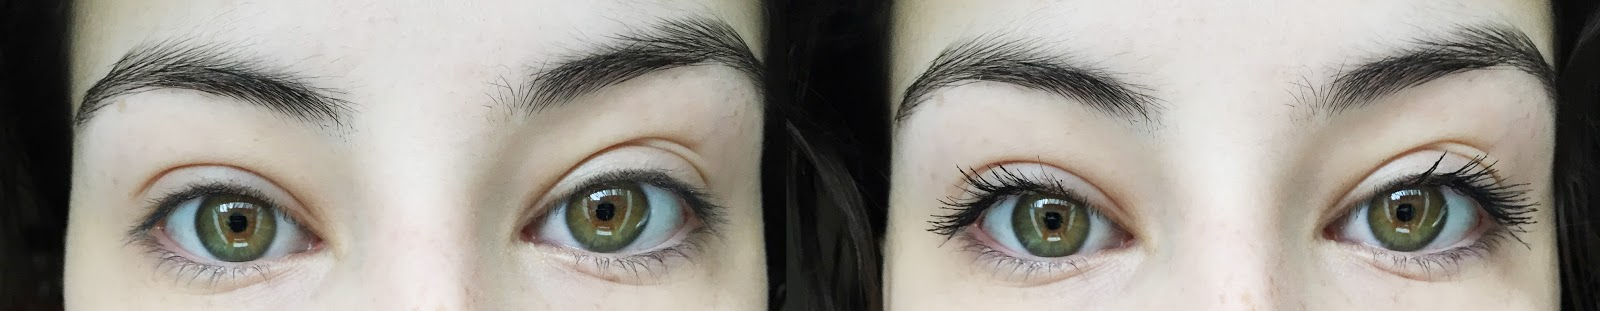 Maybelline Illegal Length Mascara Comparison